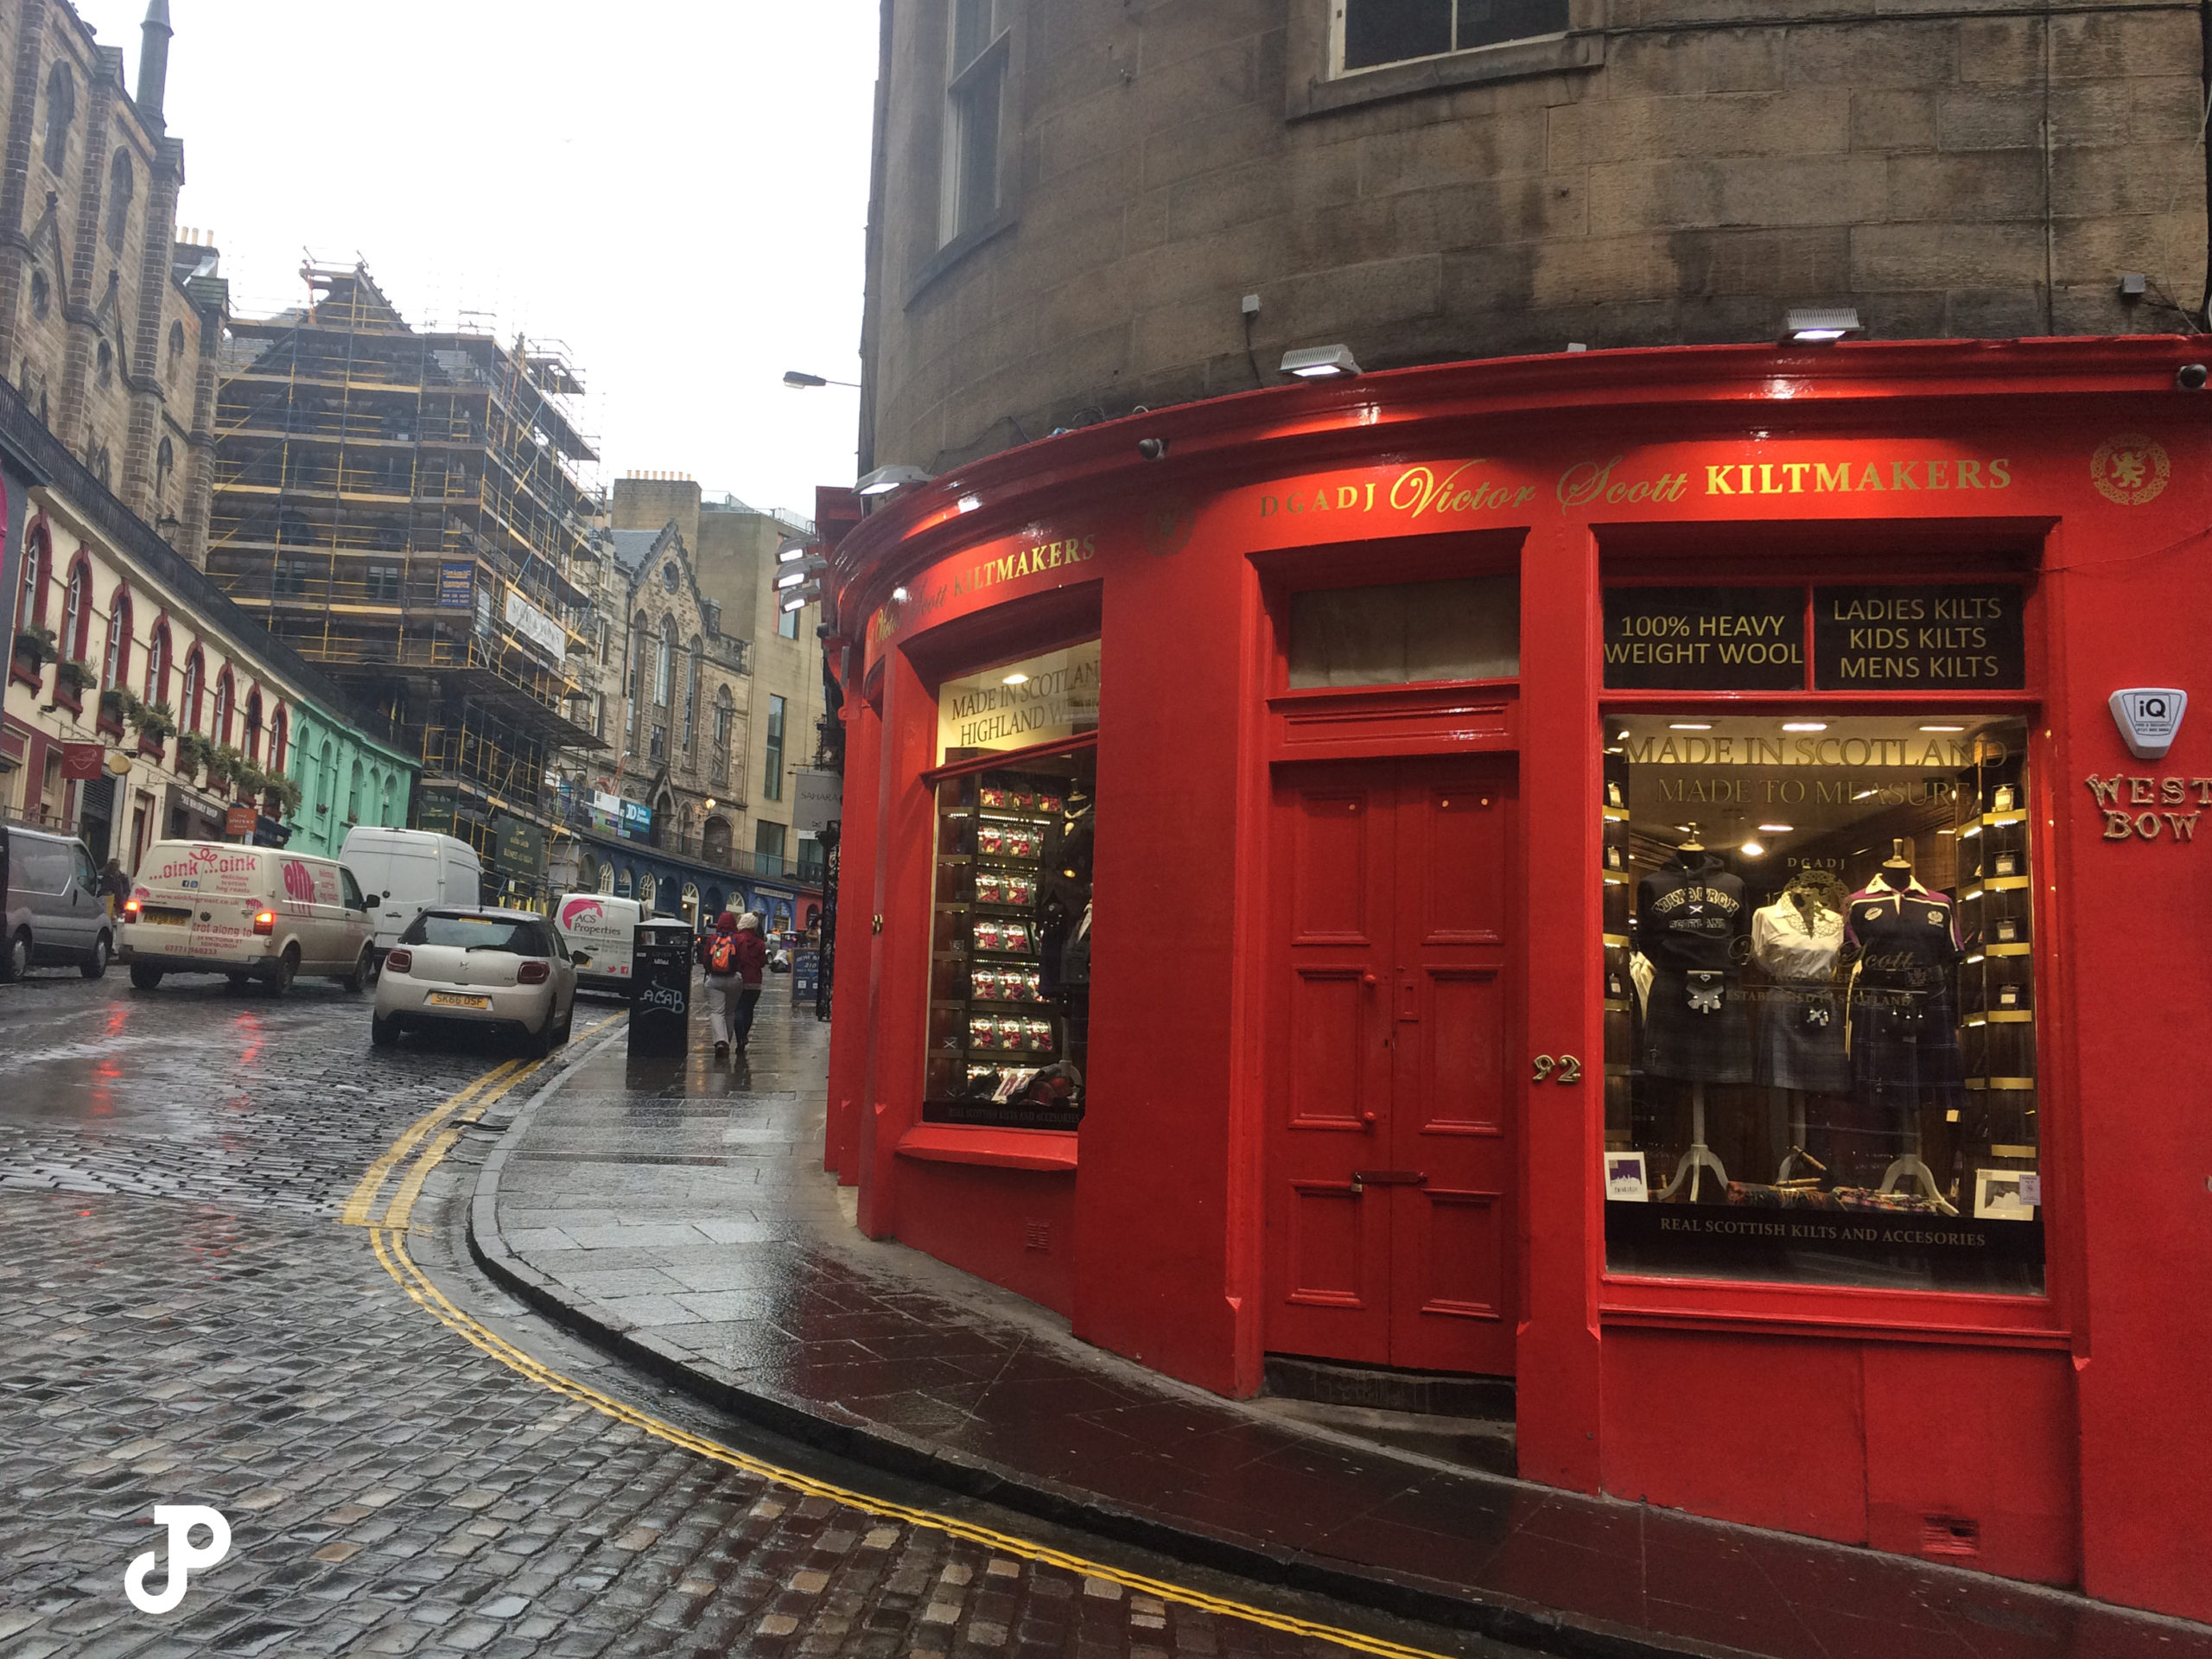 a kilt shop on an upward curving, cobblestoned road